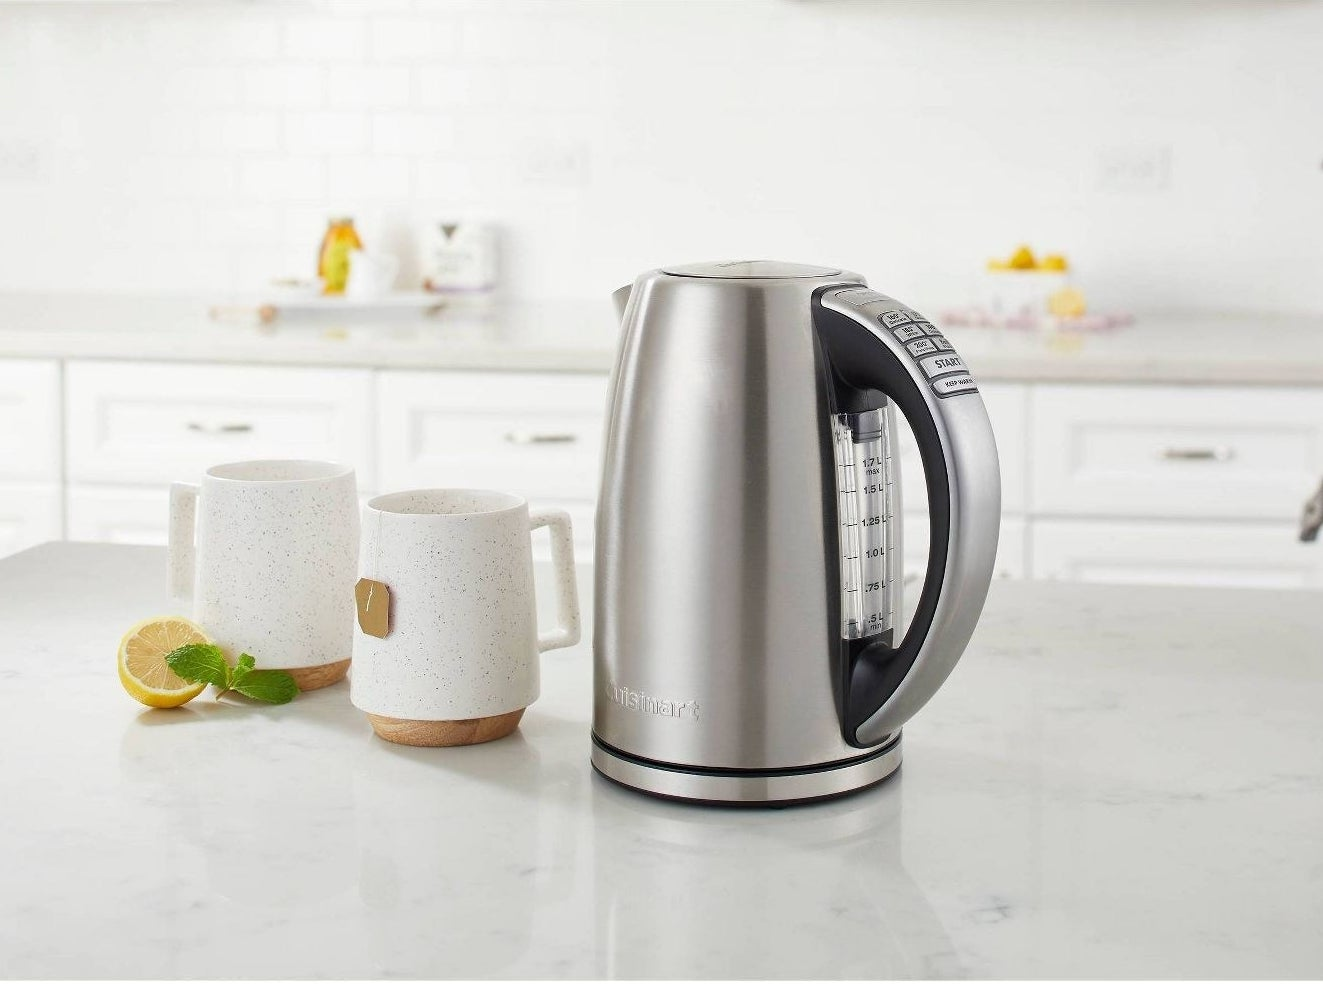 stainless steel electric kettle on counter next to mugs